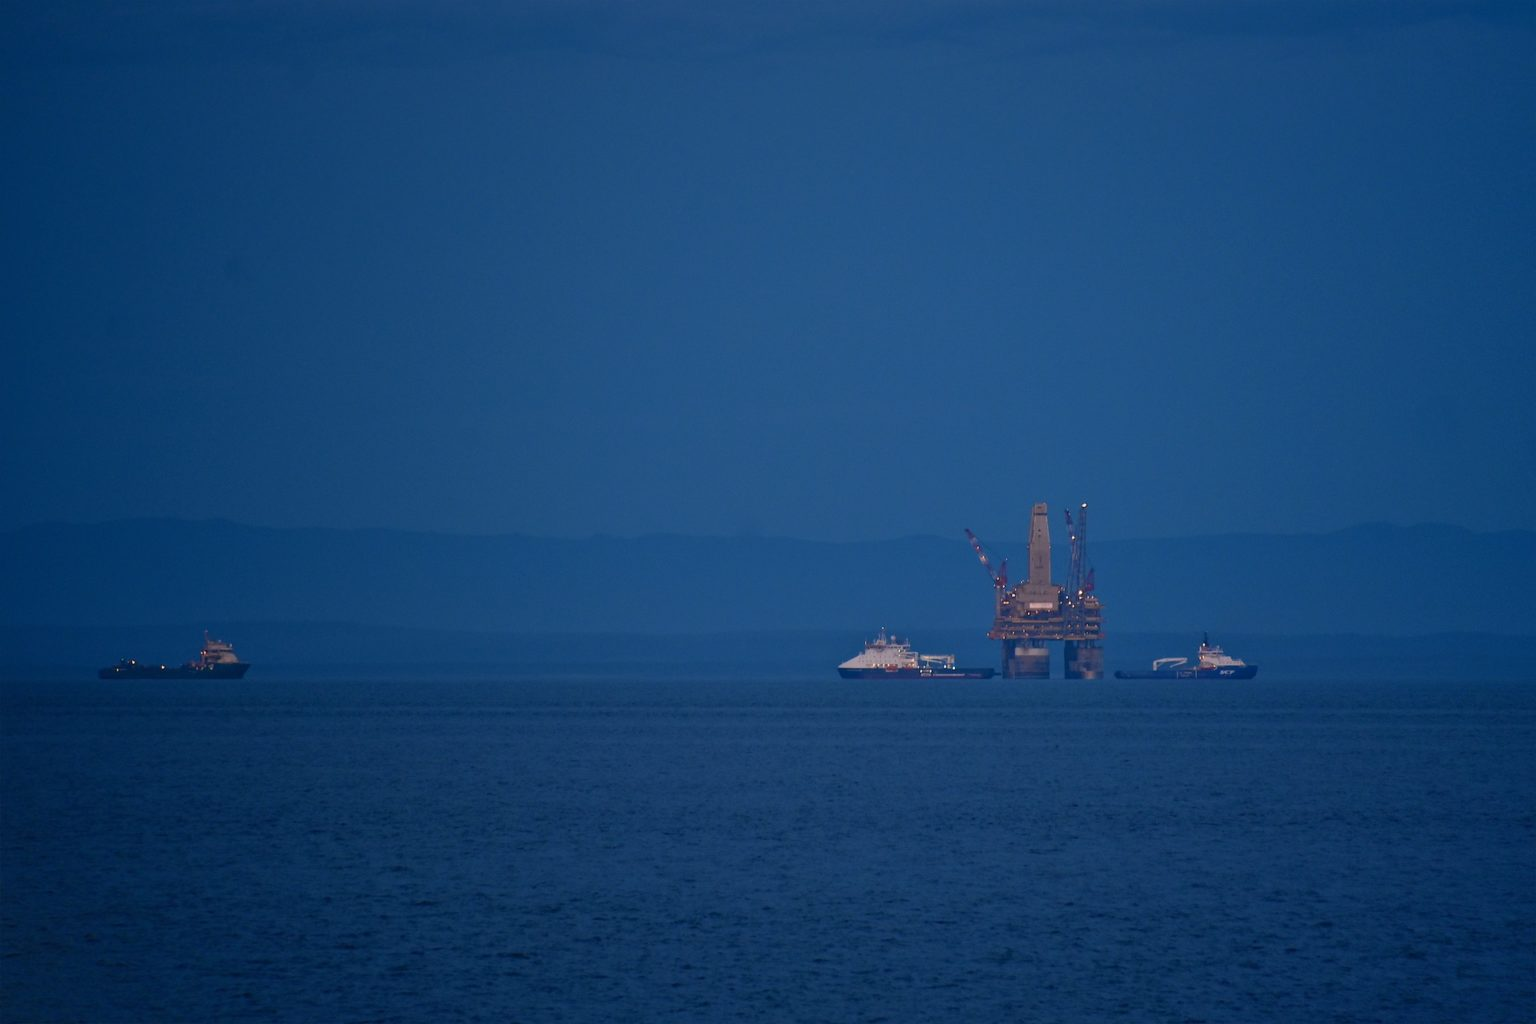 Sakhalin island. Drilling platform at sea. Fall. Around the icy water of the Sea of Okhotsk.